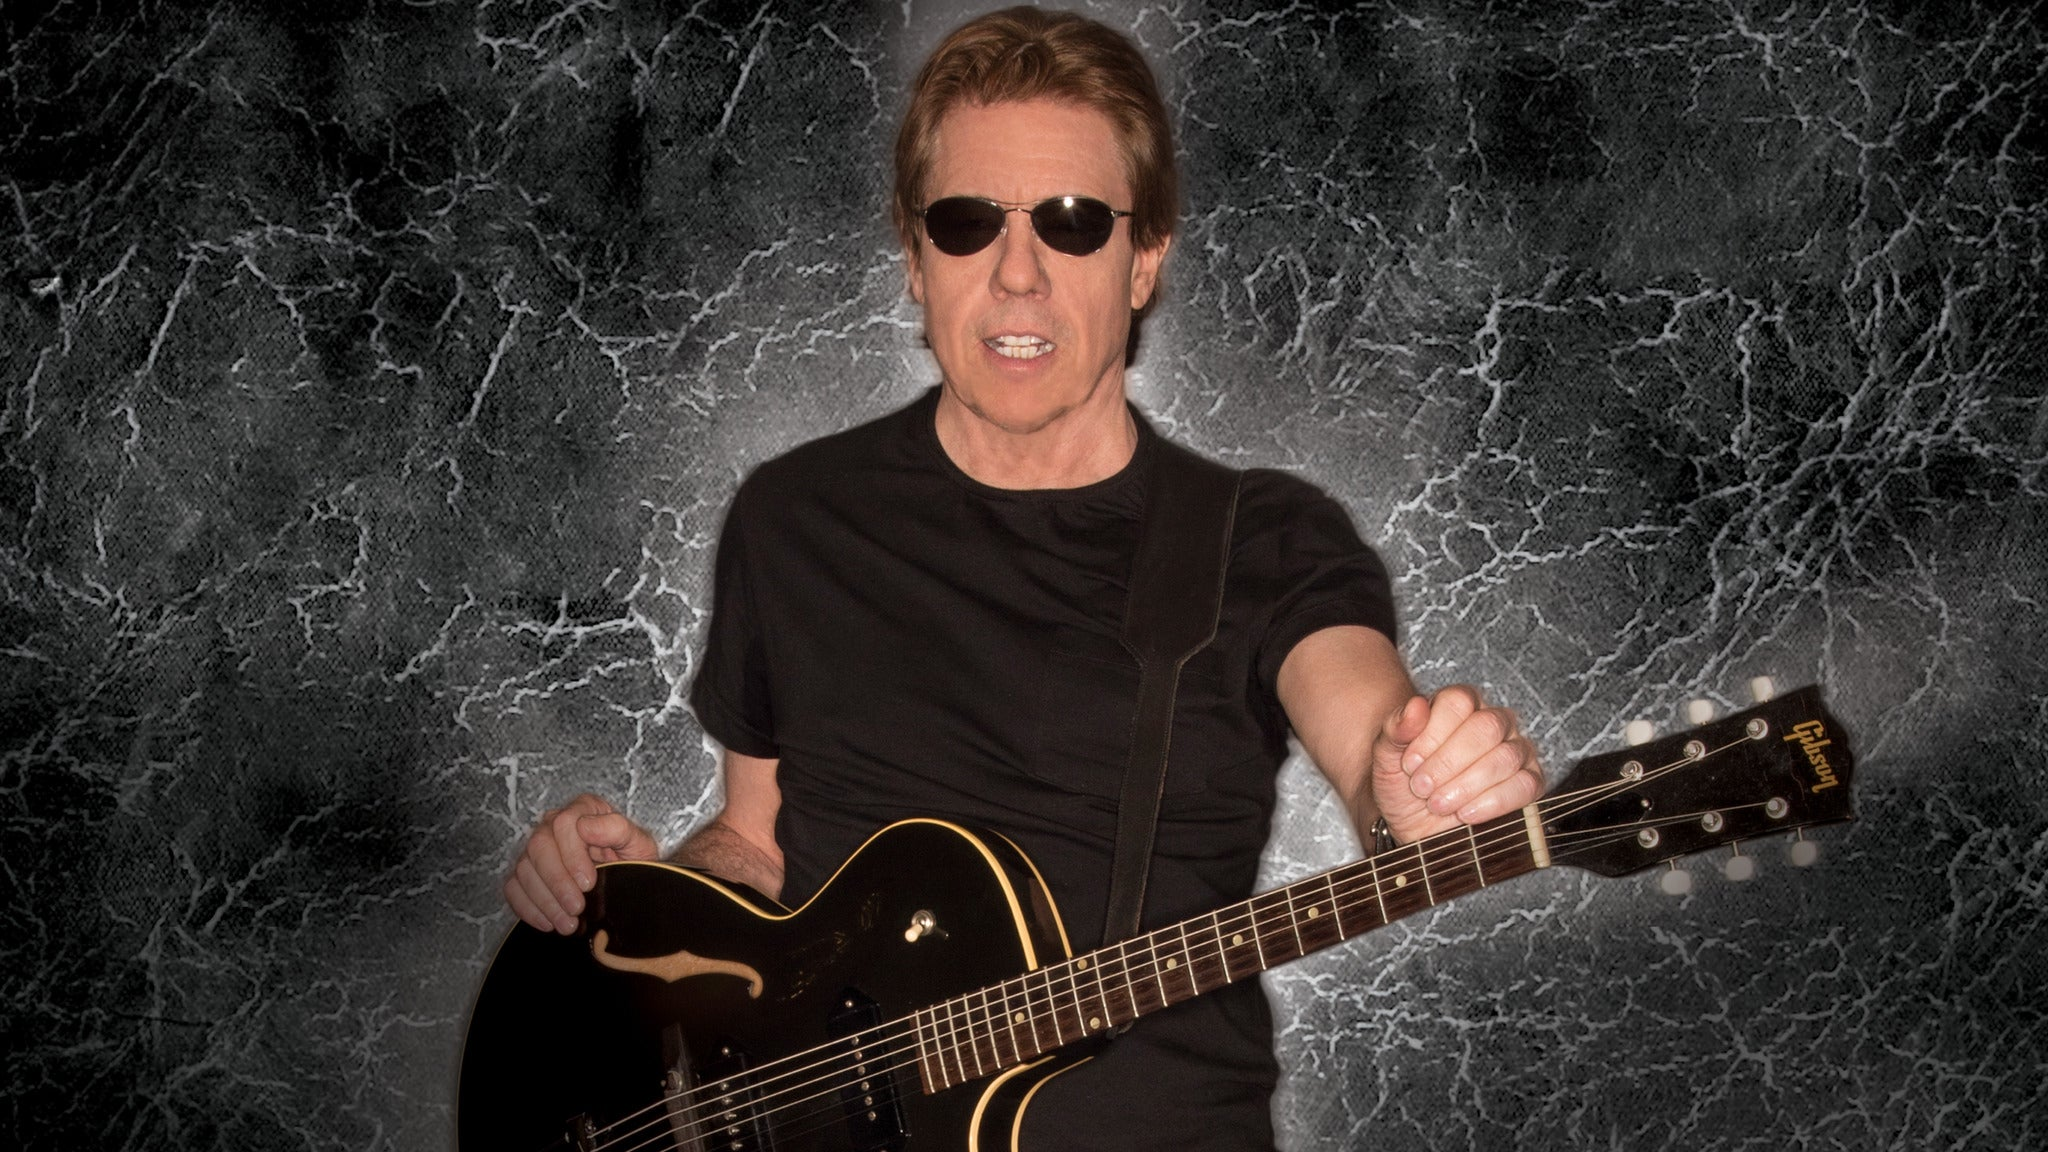 George Thorogood & The Destroyers at Stiefel Theatre